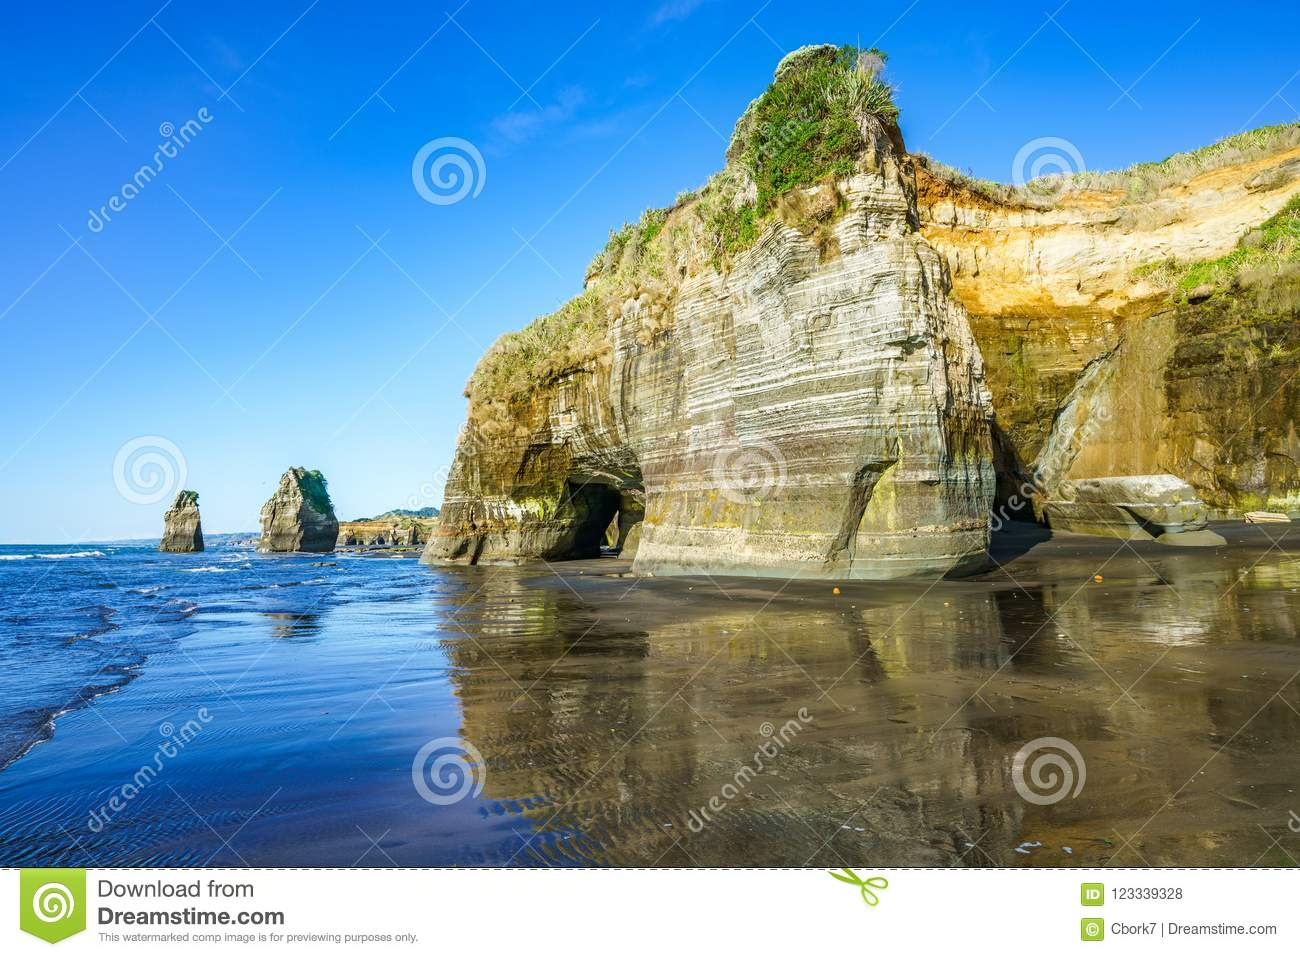 on the beach 3 sisters and elephant rock new zealand 15 stock